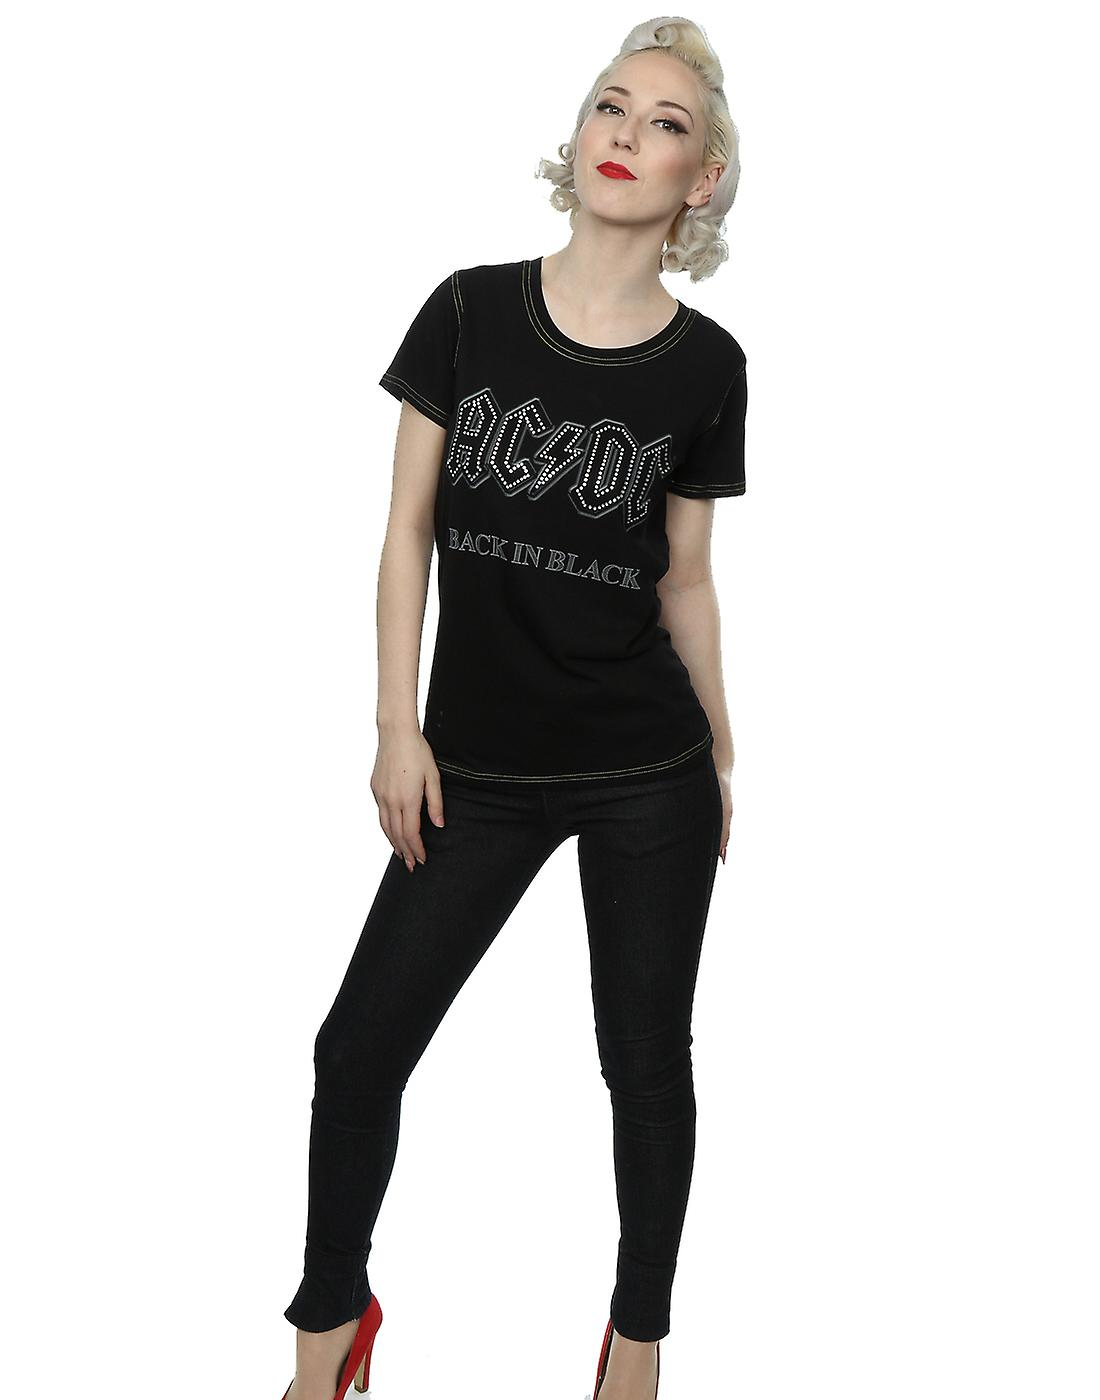 Aftershow Women's AC/DC Back In Black Diamante T-Shirt